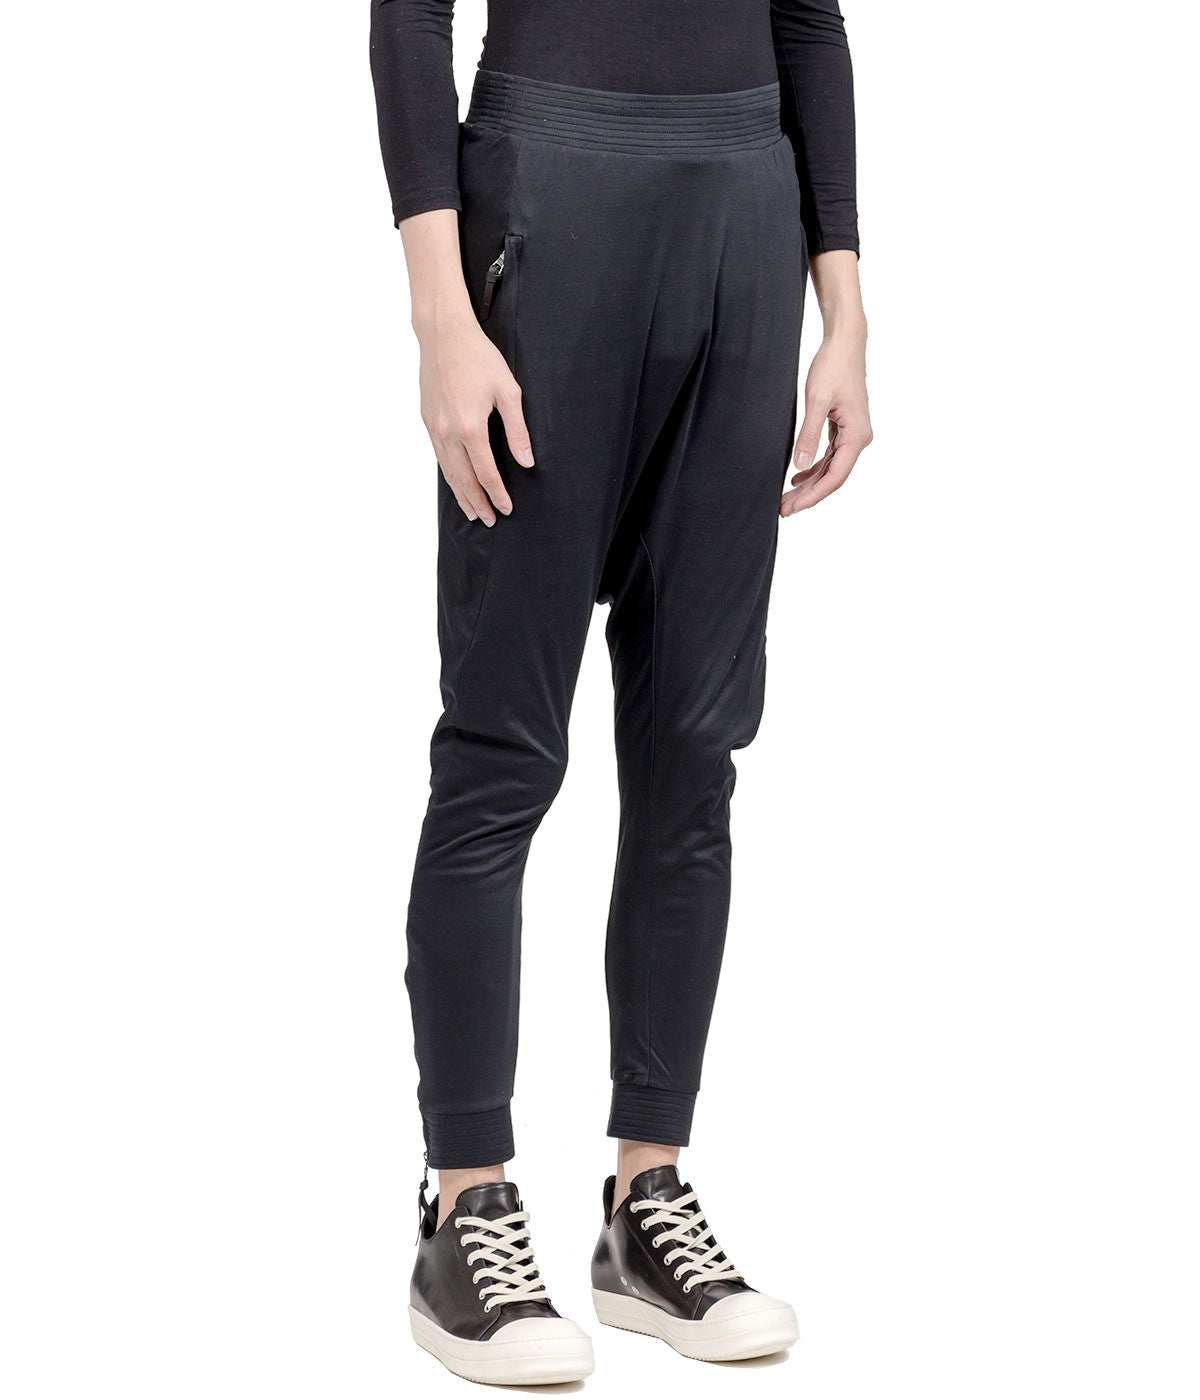 Black Dropped Crotch Lounge Pants